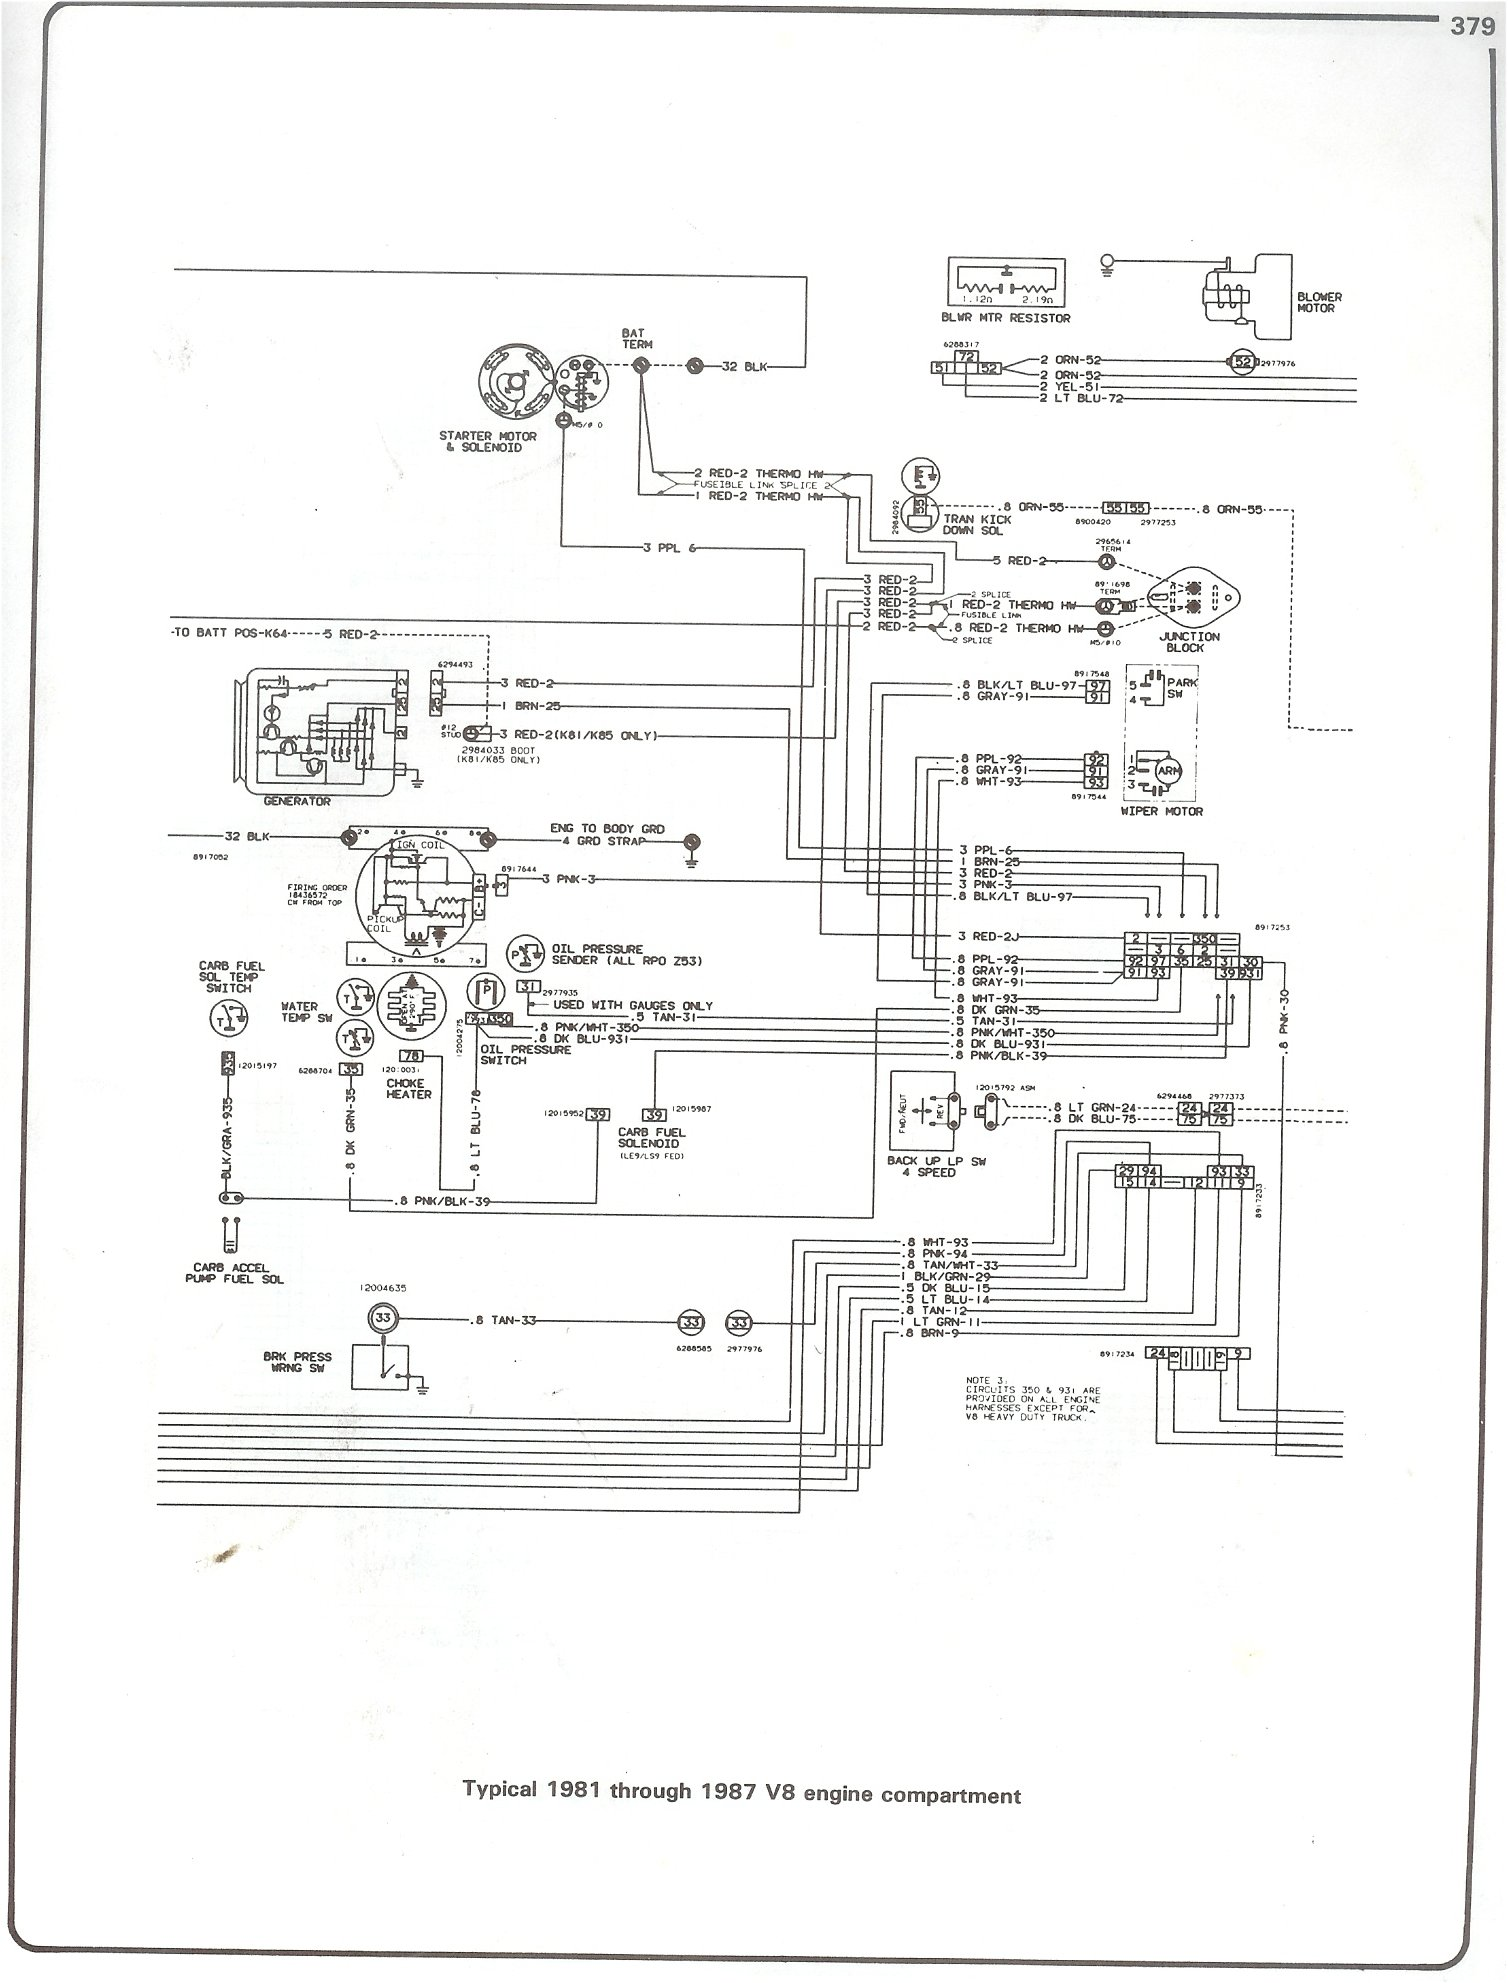 WRG-7792] 1997 S10 Fuel Gauge Wiring Diagram